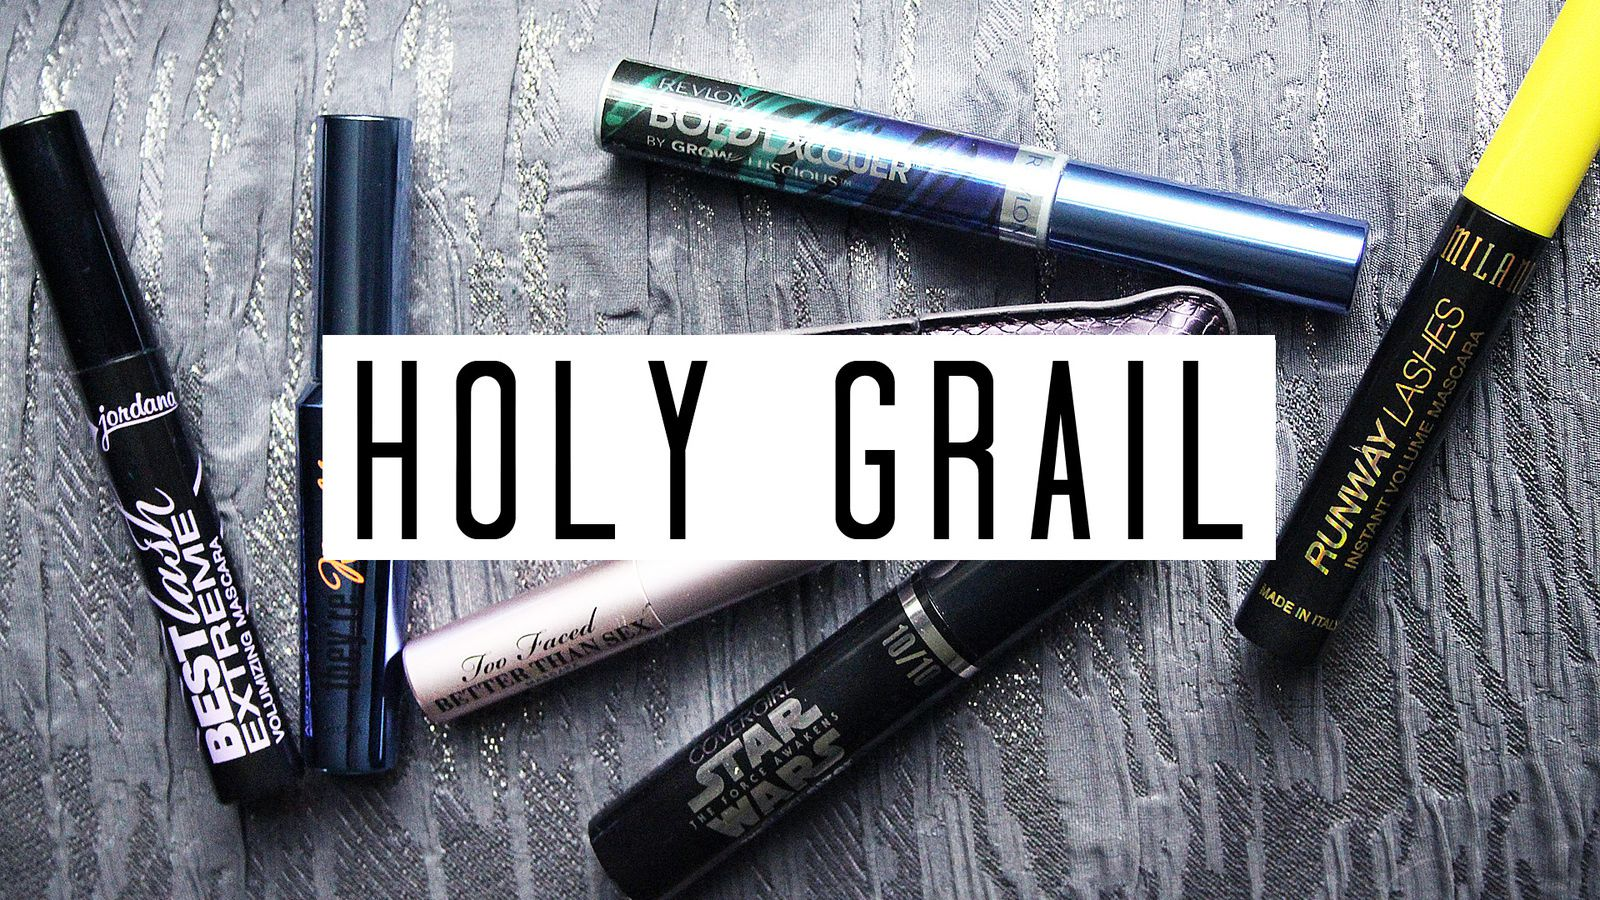 HOLY GRAIL Mascaras // Drugstore &amp&#x3B; High End